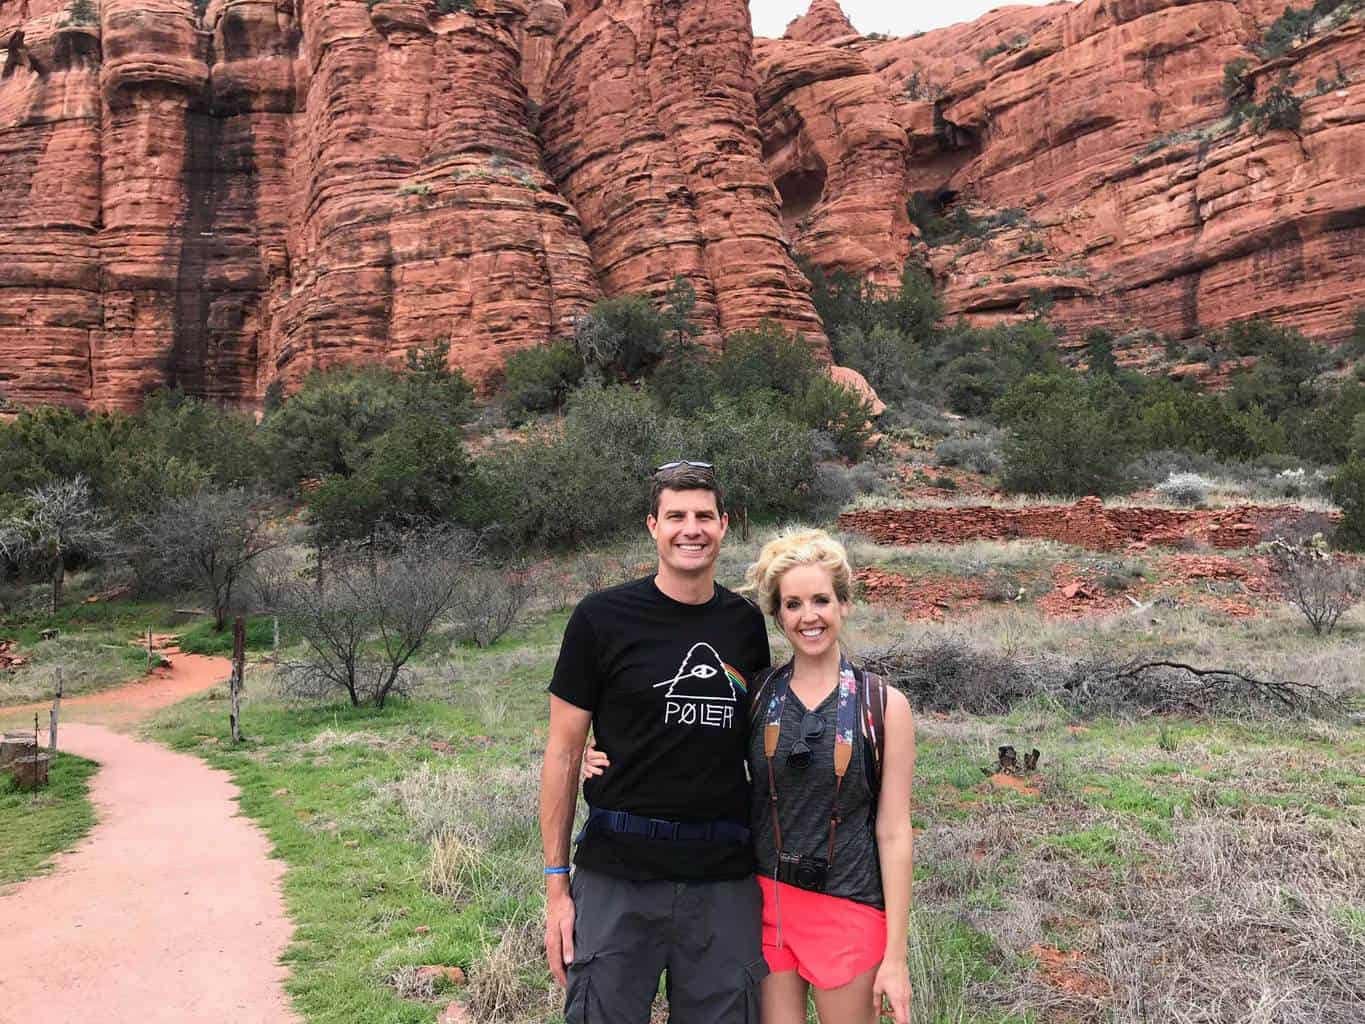 palatki-heritage-site-hiking-trail-sedona-9